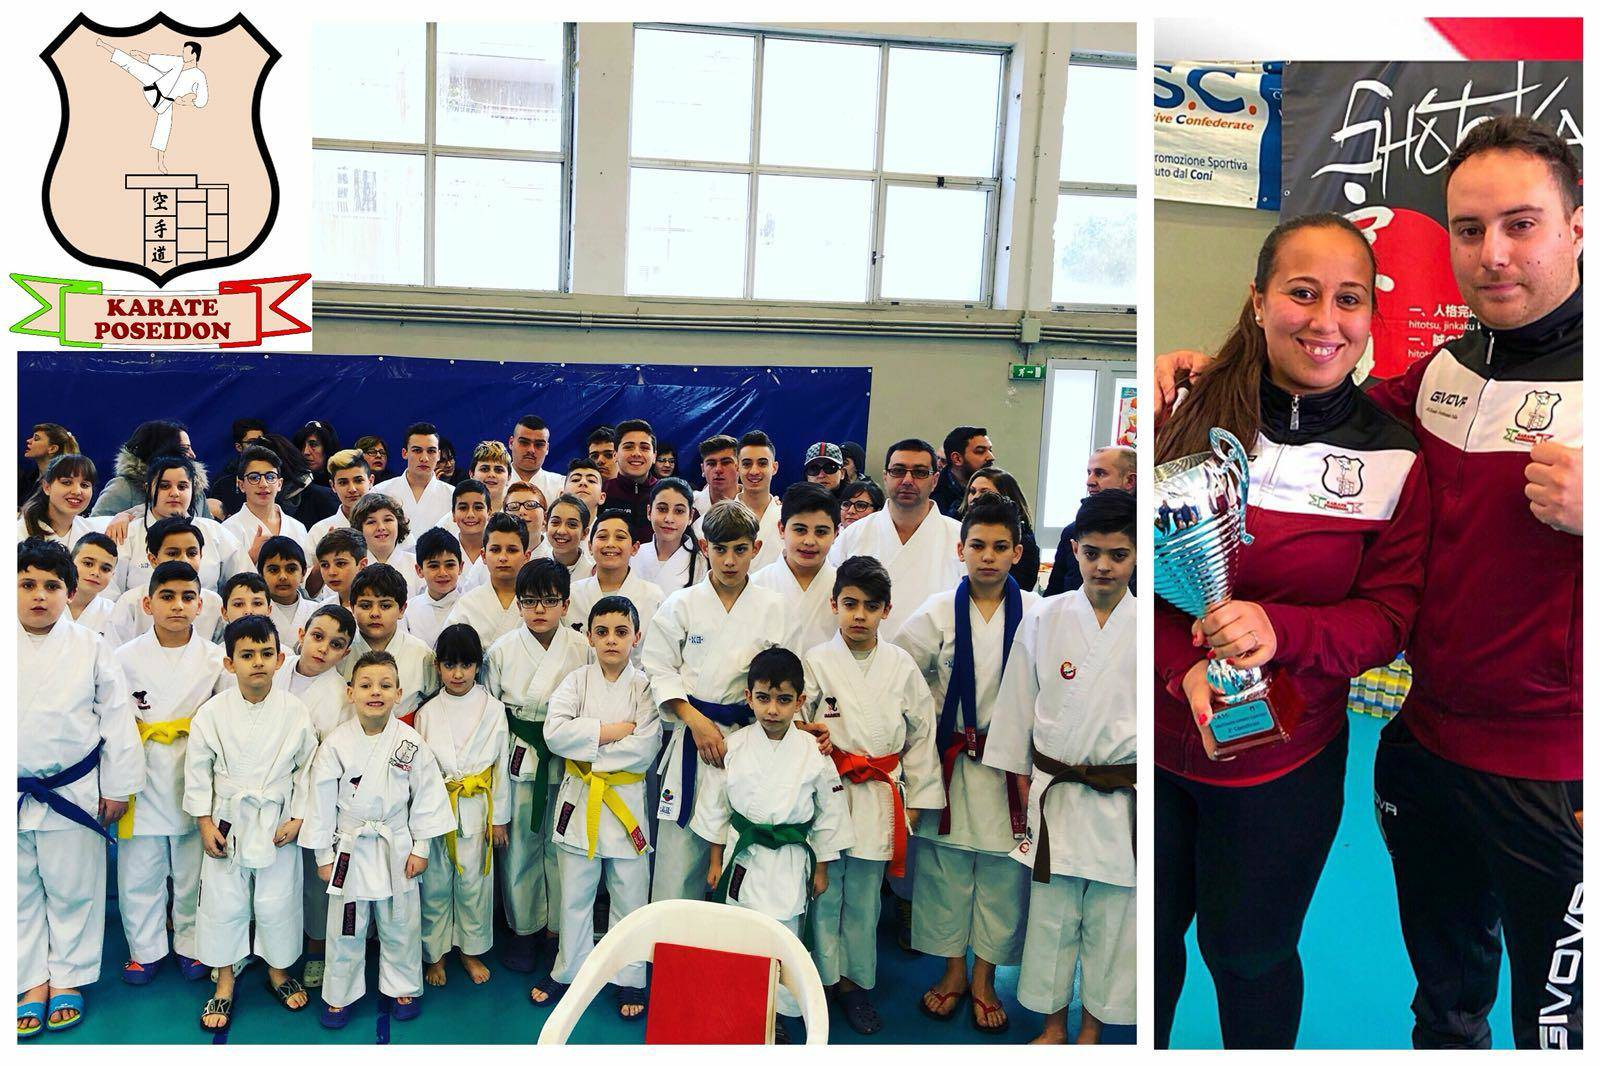 Photo of Karate Poseidon, secondo posto al trofeo interregionale a Pontecagnano